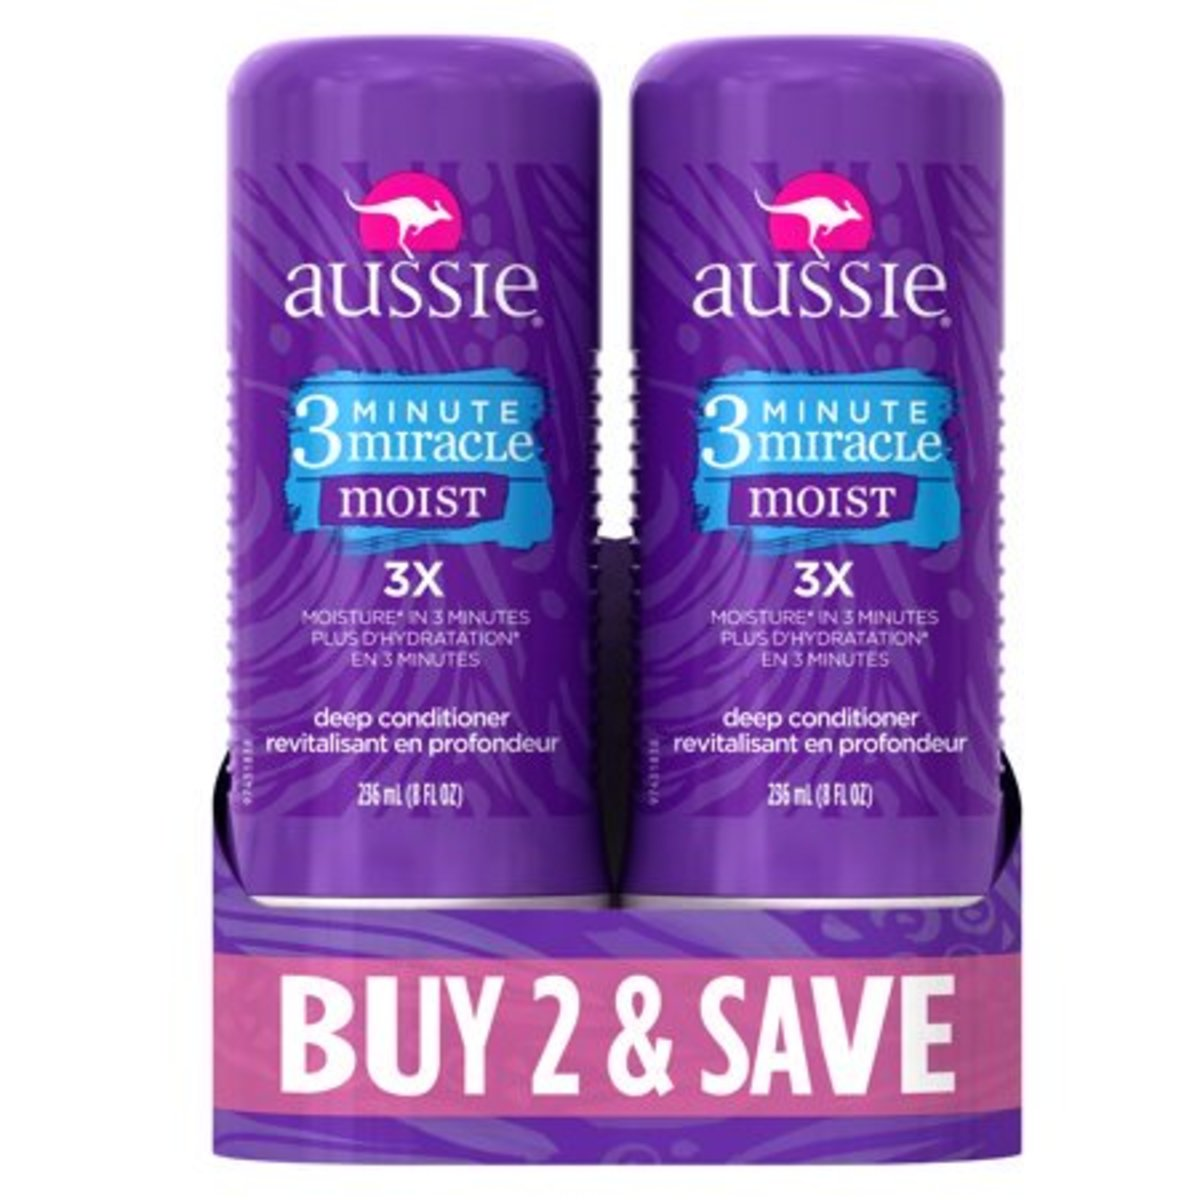 Aussie's 3 Minute Miracle two-pack is available at many Walmarts.